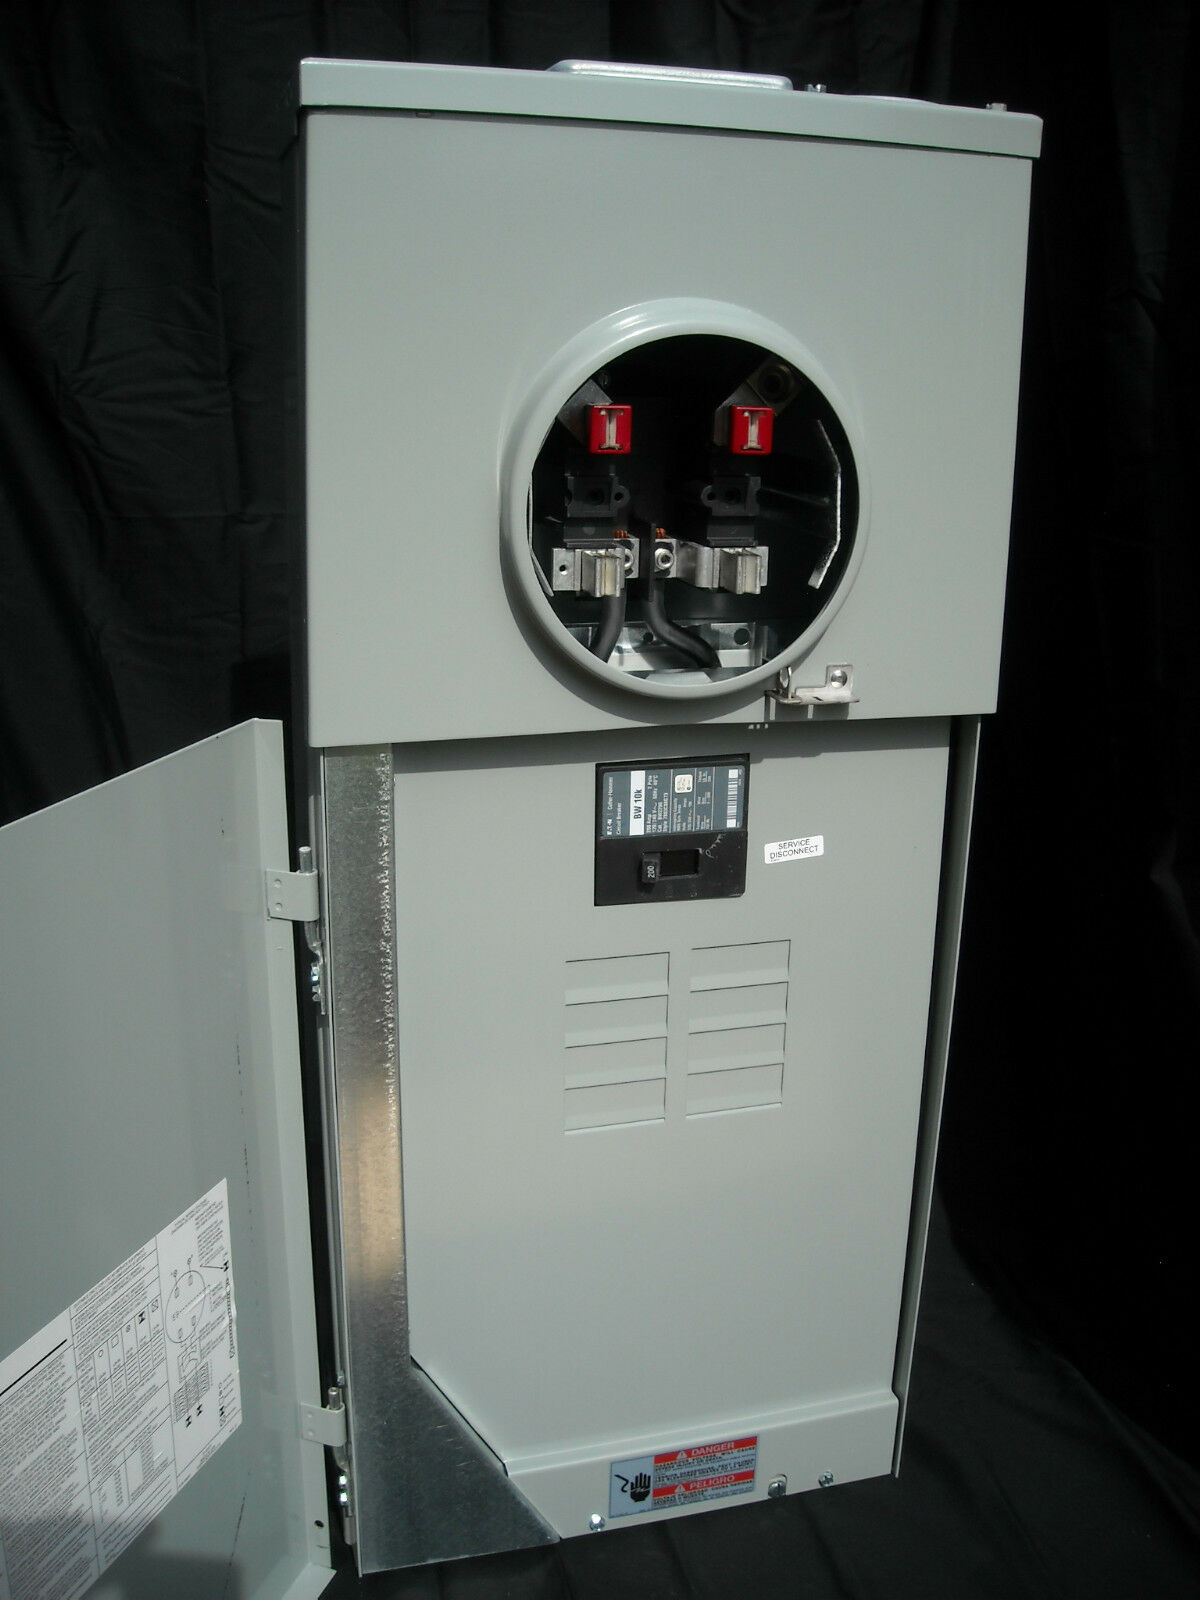 New Eaton Cutler Hammer 200 Amp Meter Breaker Panel Mb816b200bts Shop Square D Homeline 40amp 2pole Circuit At Lowescom 1 Of 9 See More